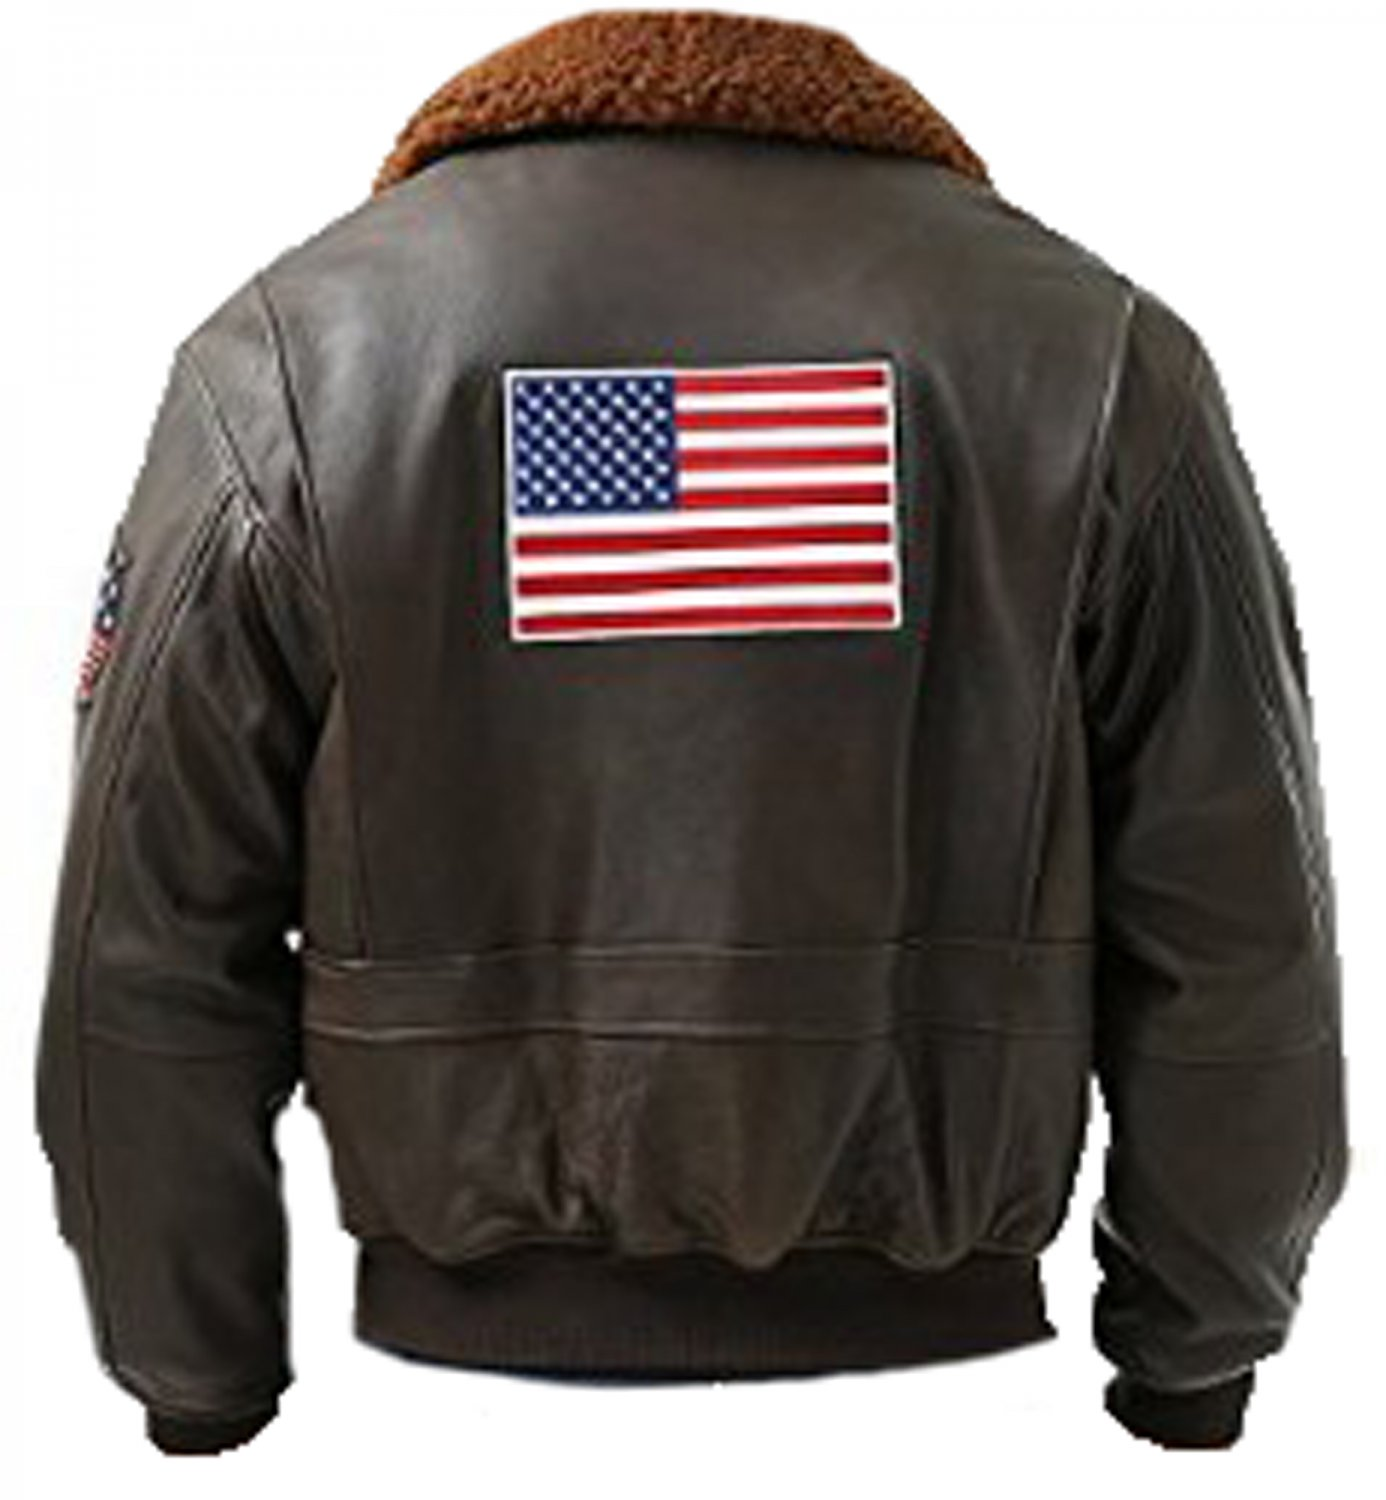 Men's Top Gun G-1 Fight Bomber Goatskin Leather Jacket